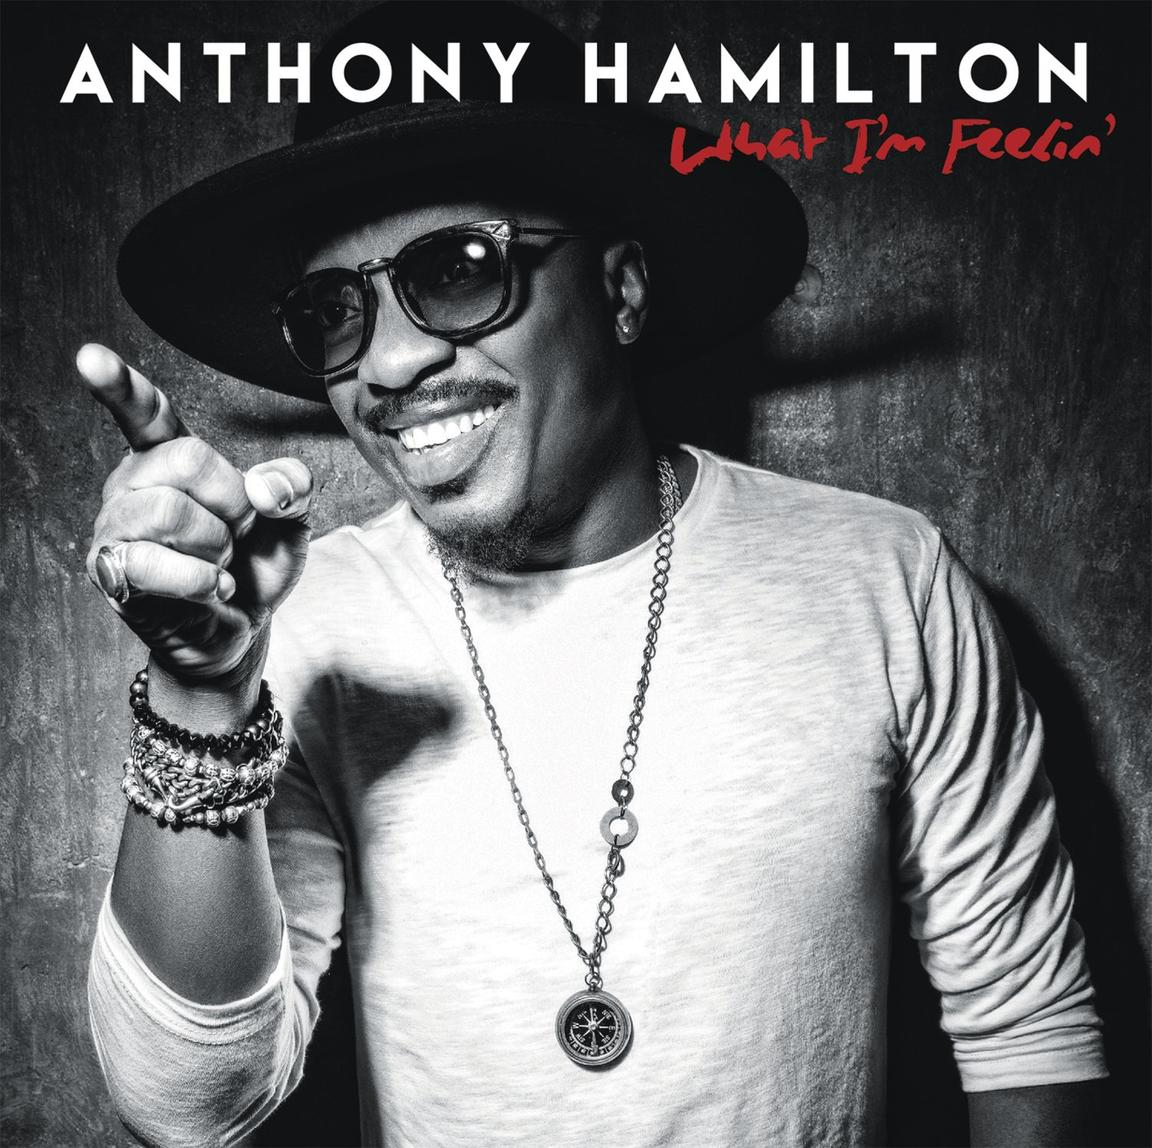 Anthony Hamilton / What I'm Feelin'